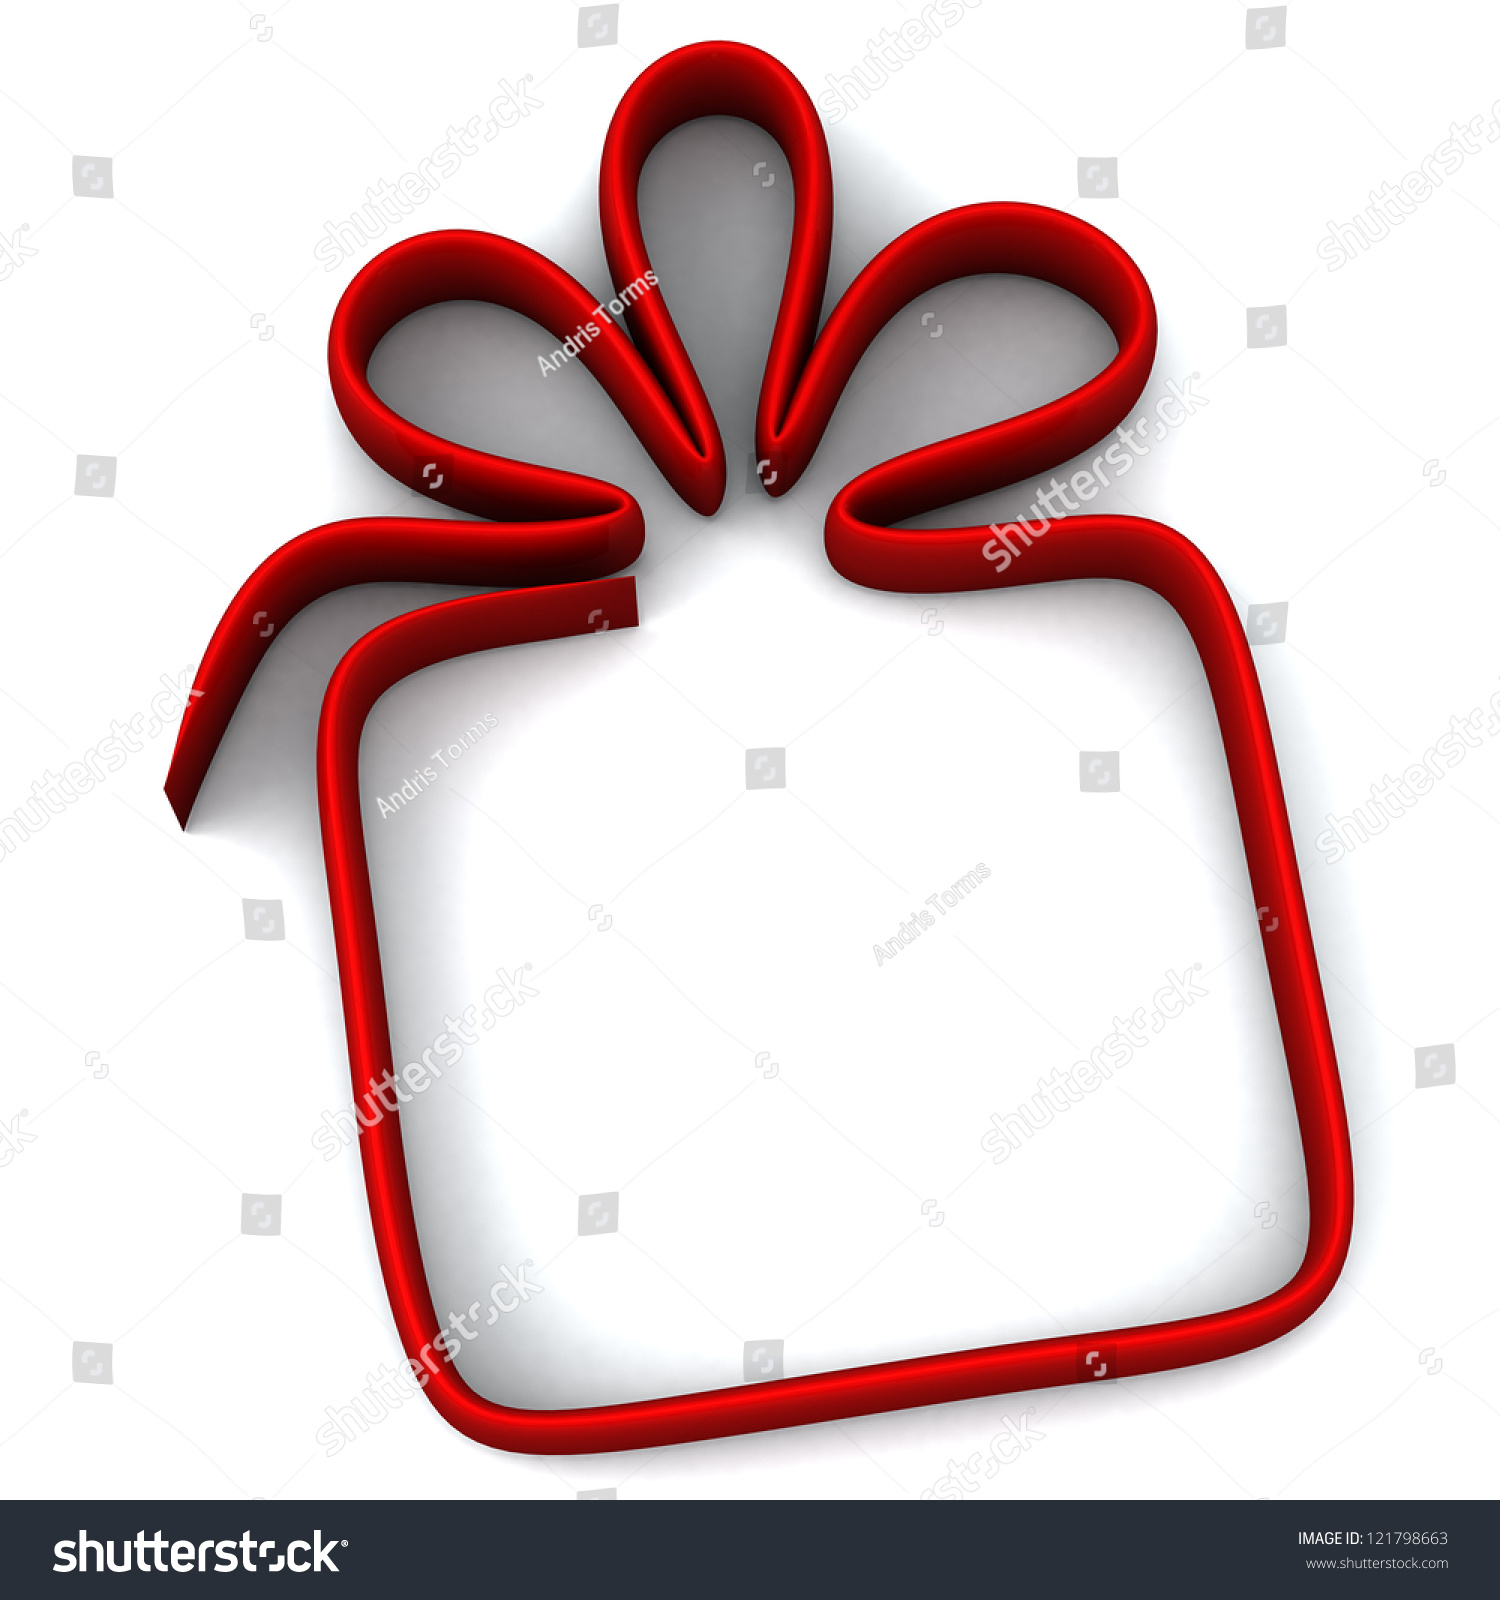 Gift Box Icon Red : Red gift box icon and frame d image stock photo